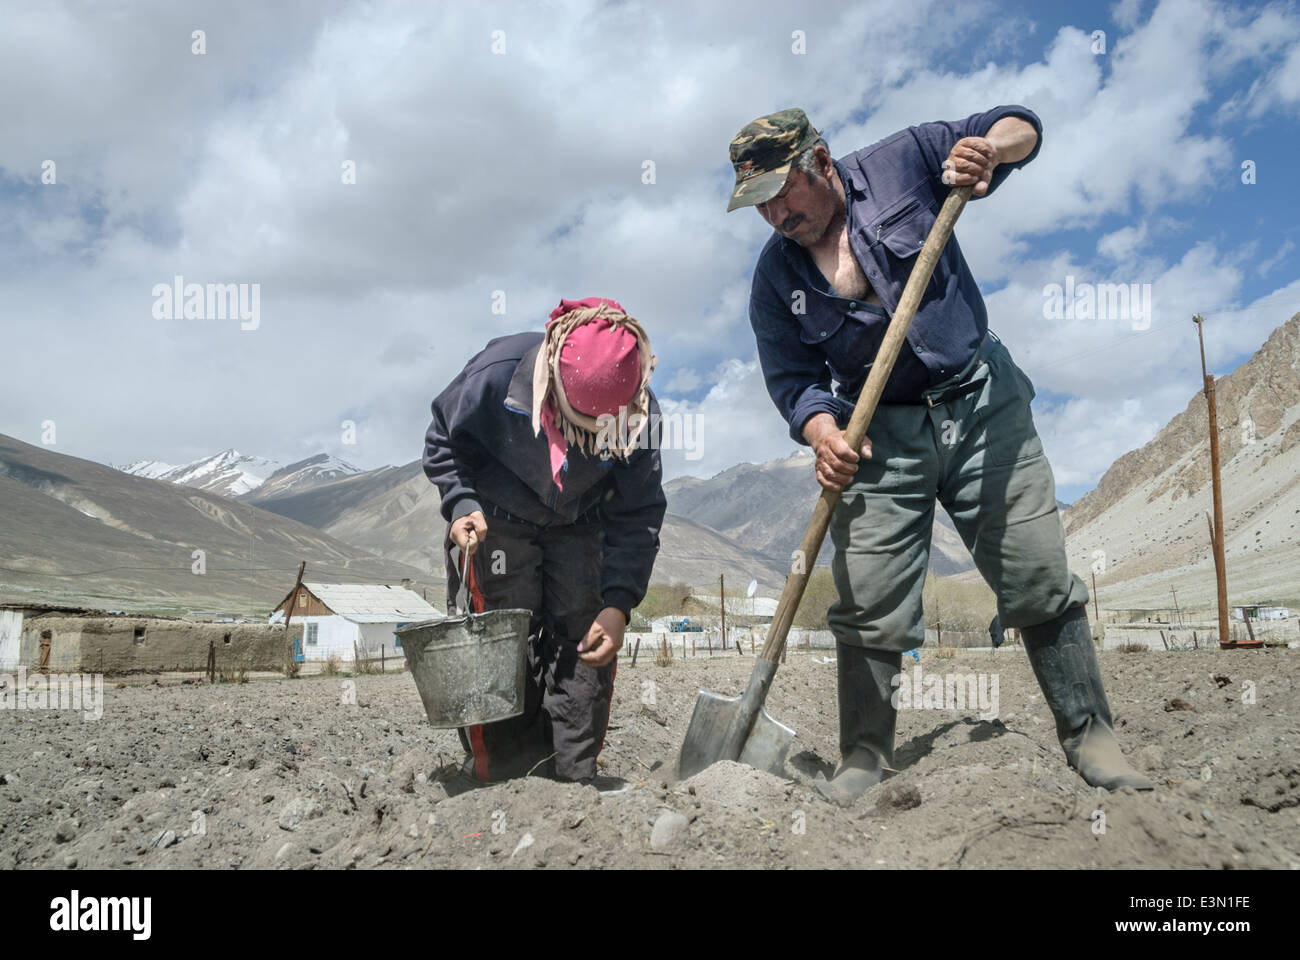 People planting potatoes in a remote village near the Pamir Highway, Tajikistan, Central Asia Stock Photo